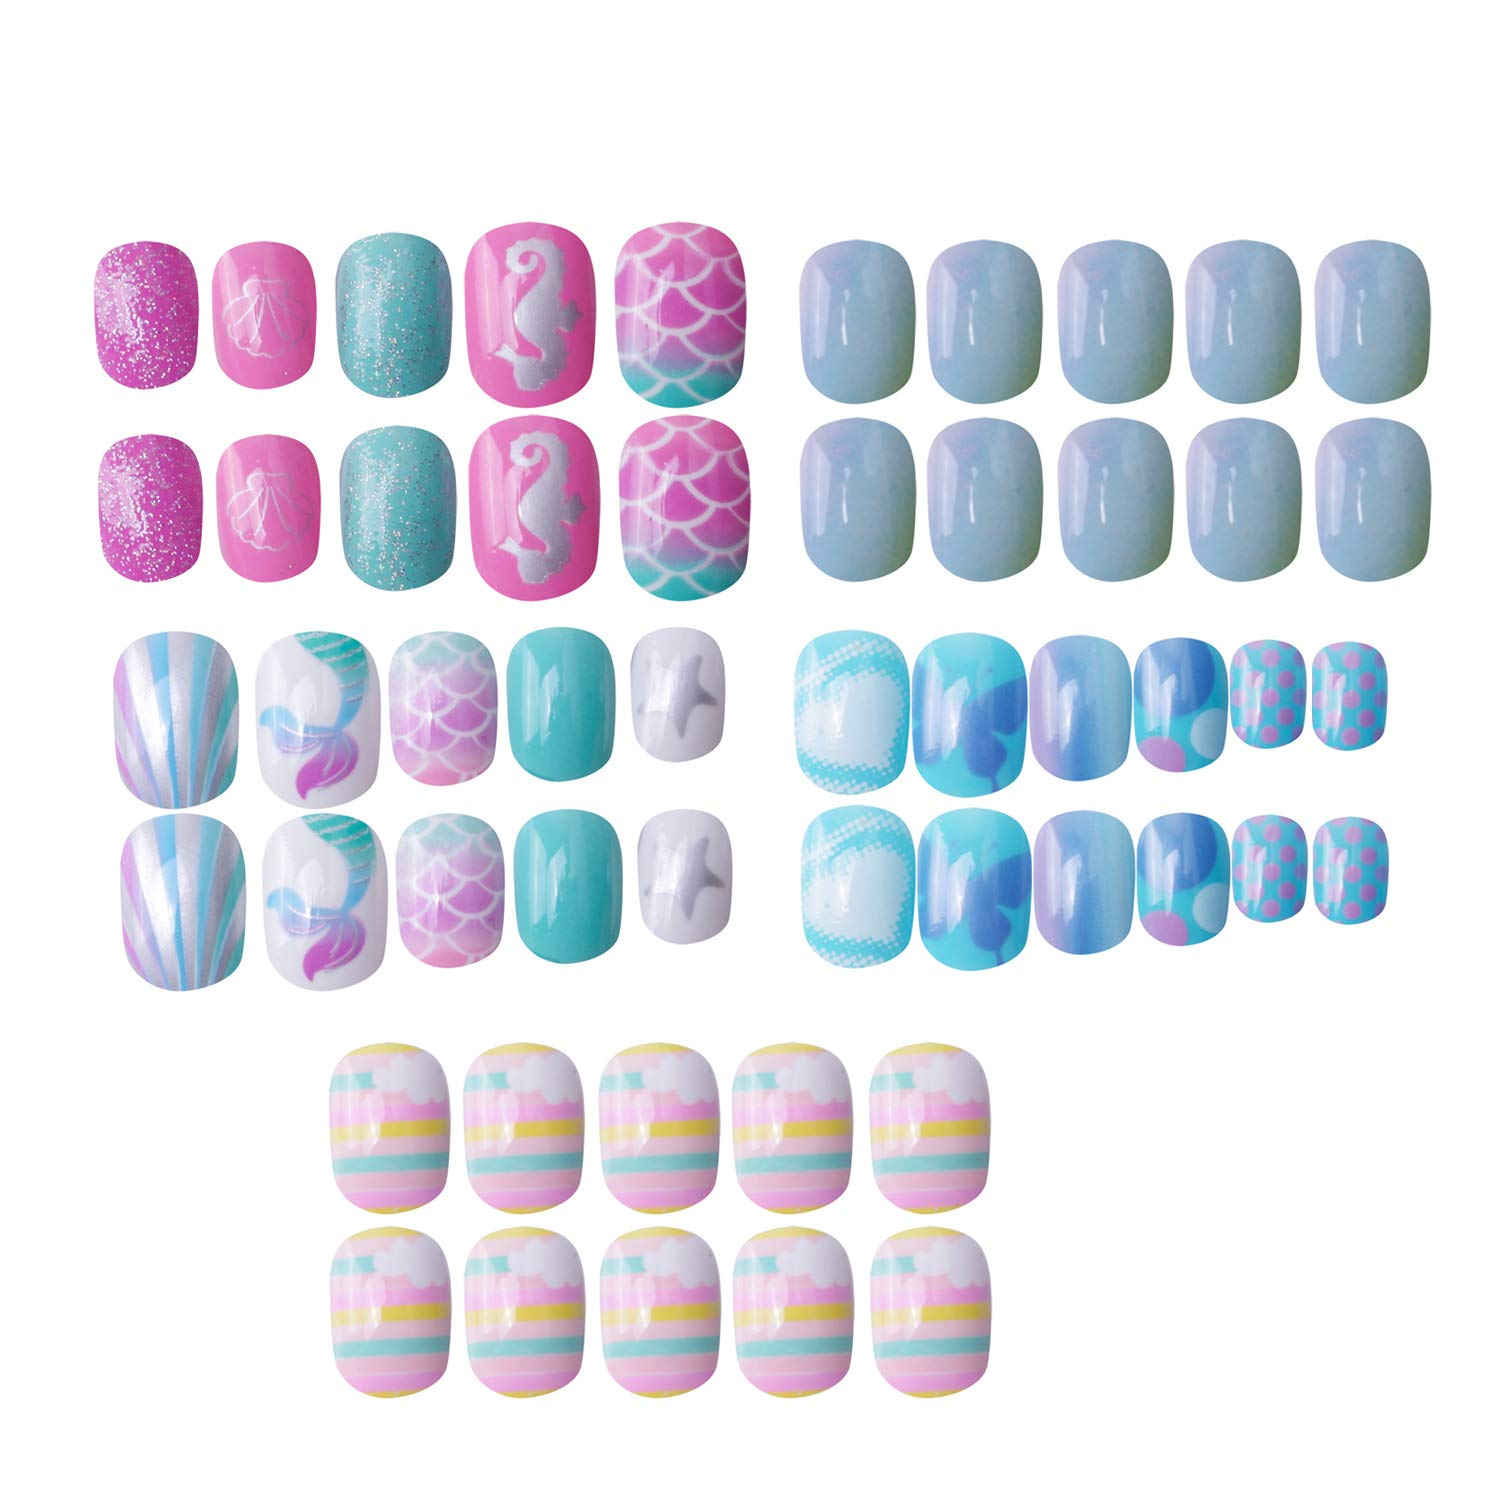 120 pcs 5 pack Children Nails Press on Pre-glue Full Cover Glitter Gradient Color Short False Nail Kits Great Christmas Gift for Kids Little Girls - Mermaid Beach Series by SIUSIO